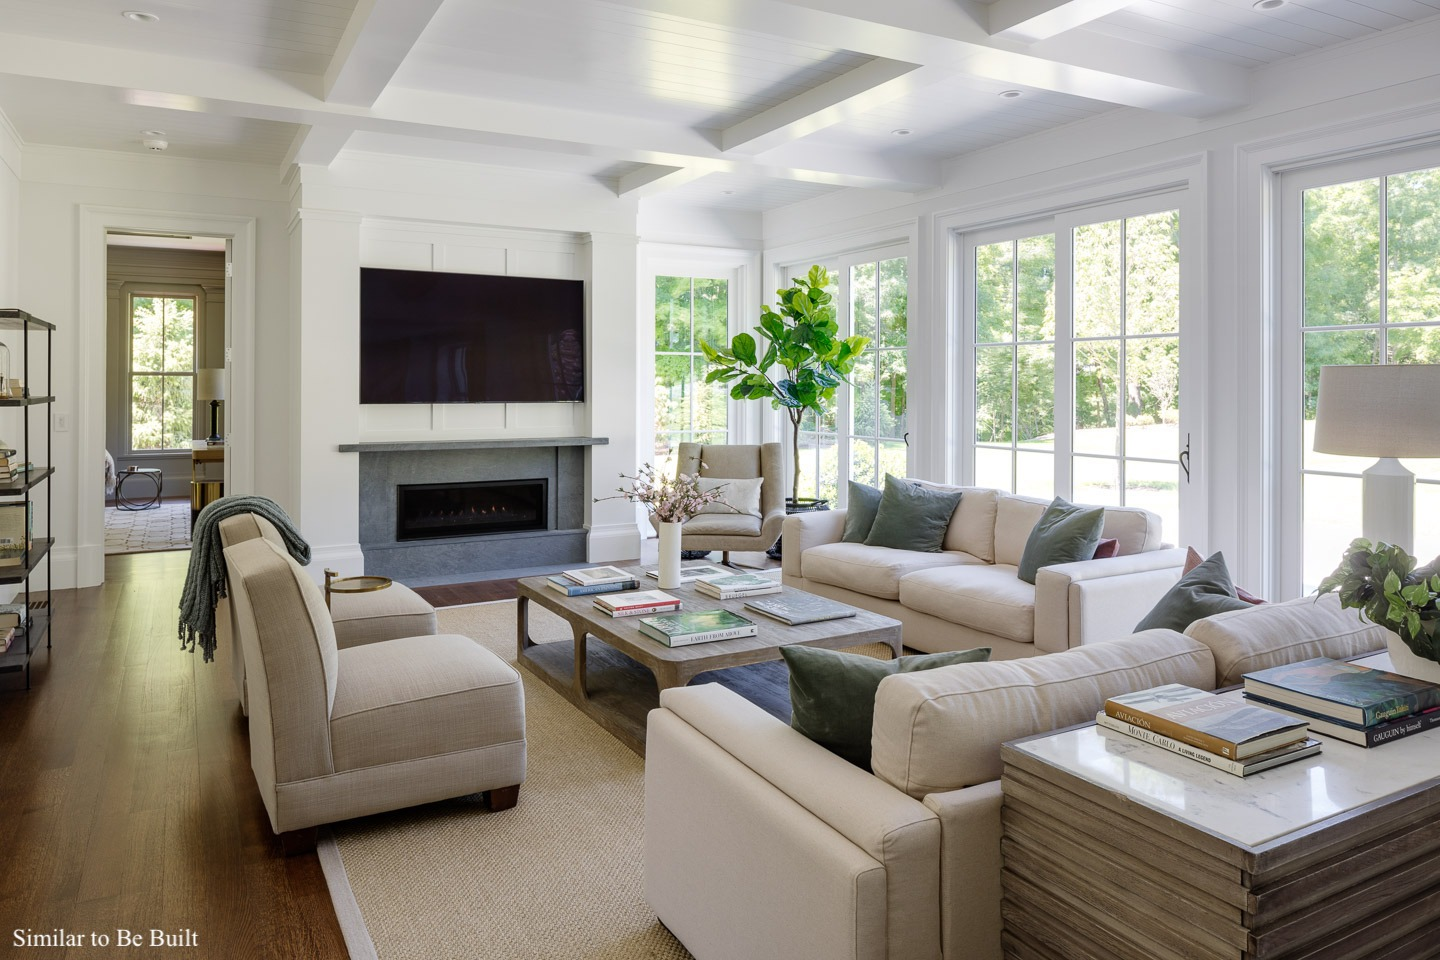 Newly constructed Family room at 21 Chestnut Street with windows along the back wall